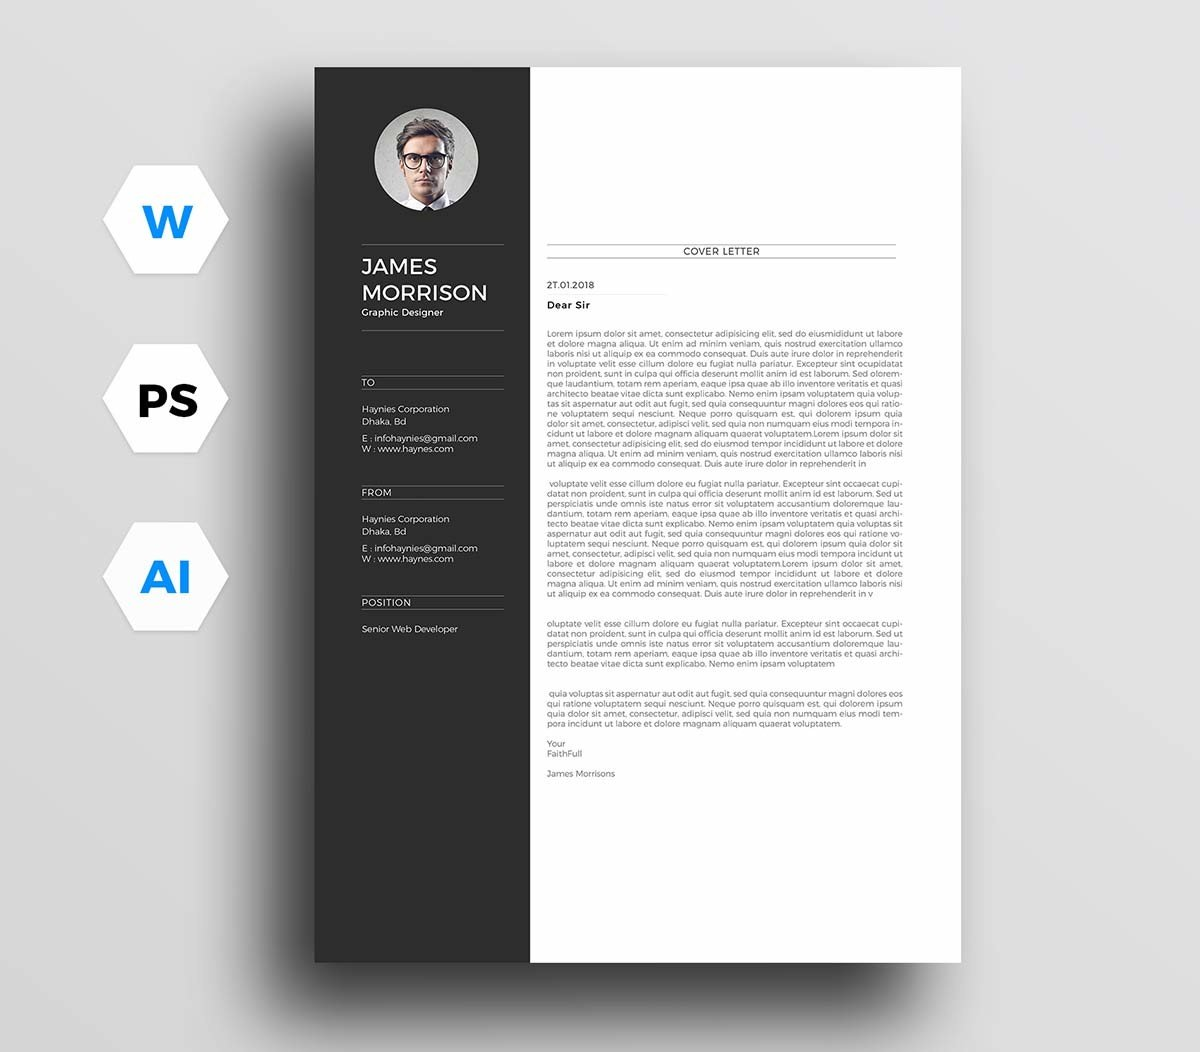 14/07/2021· free modern cover letter templates. 12 Cover Letter Templates For Microsoft Word Free Download